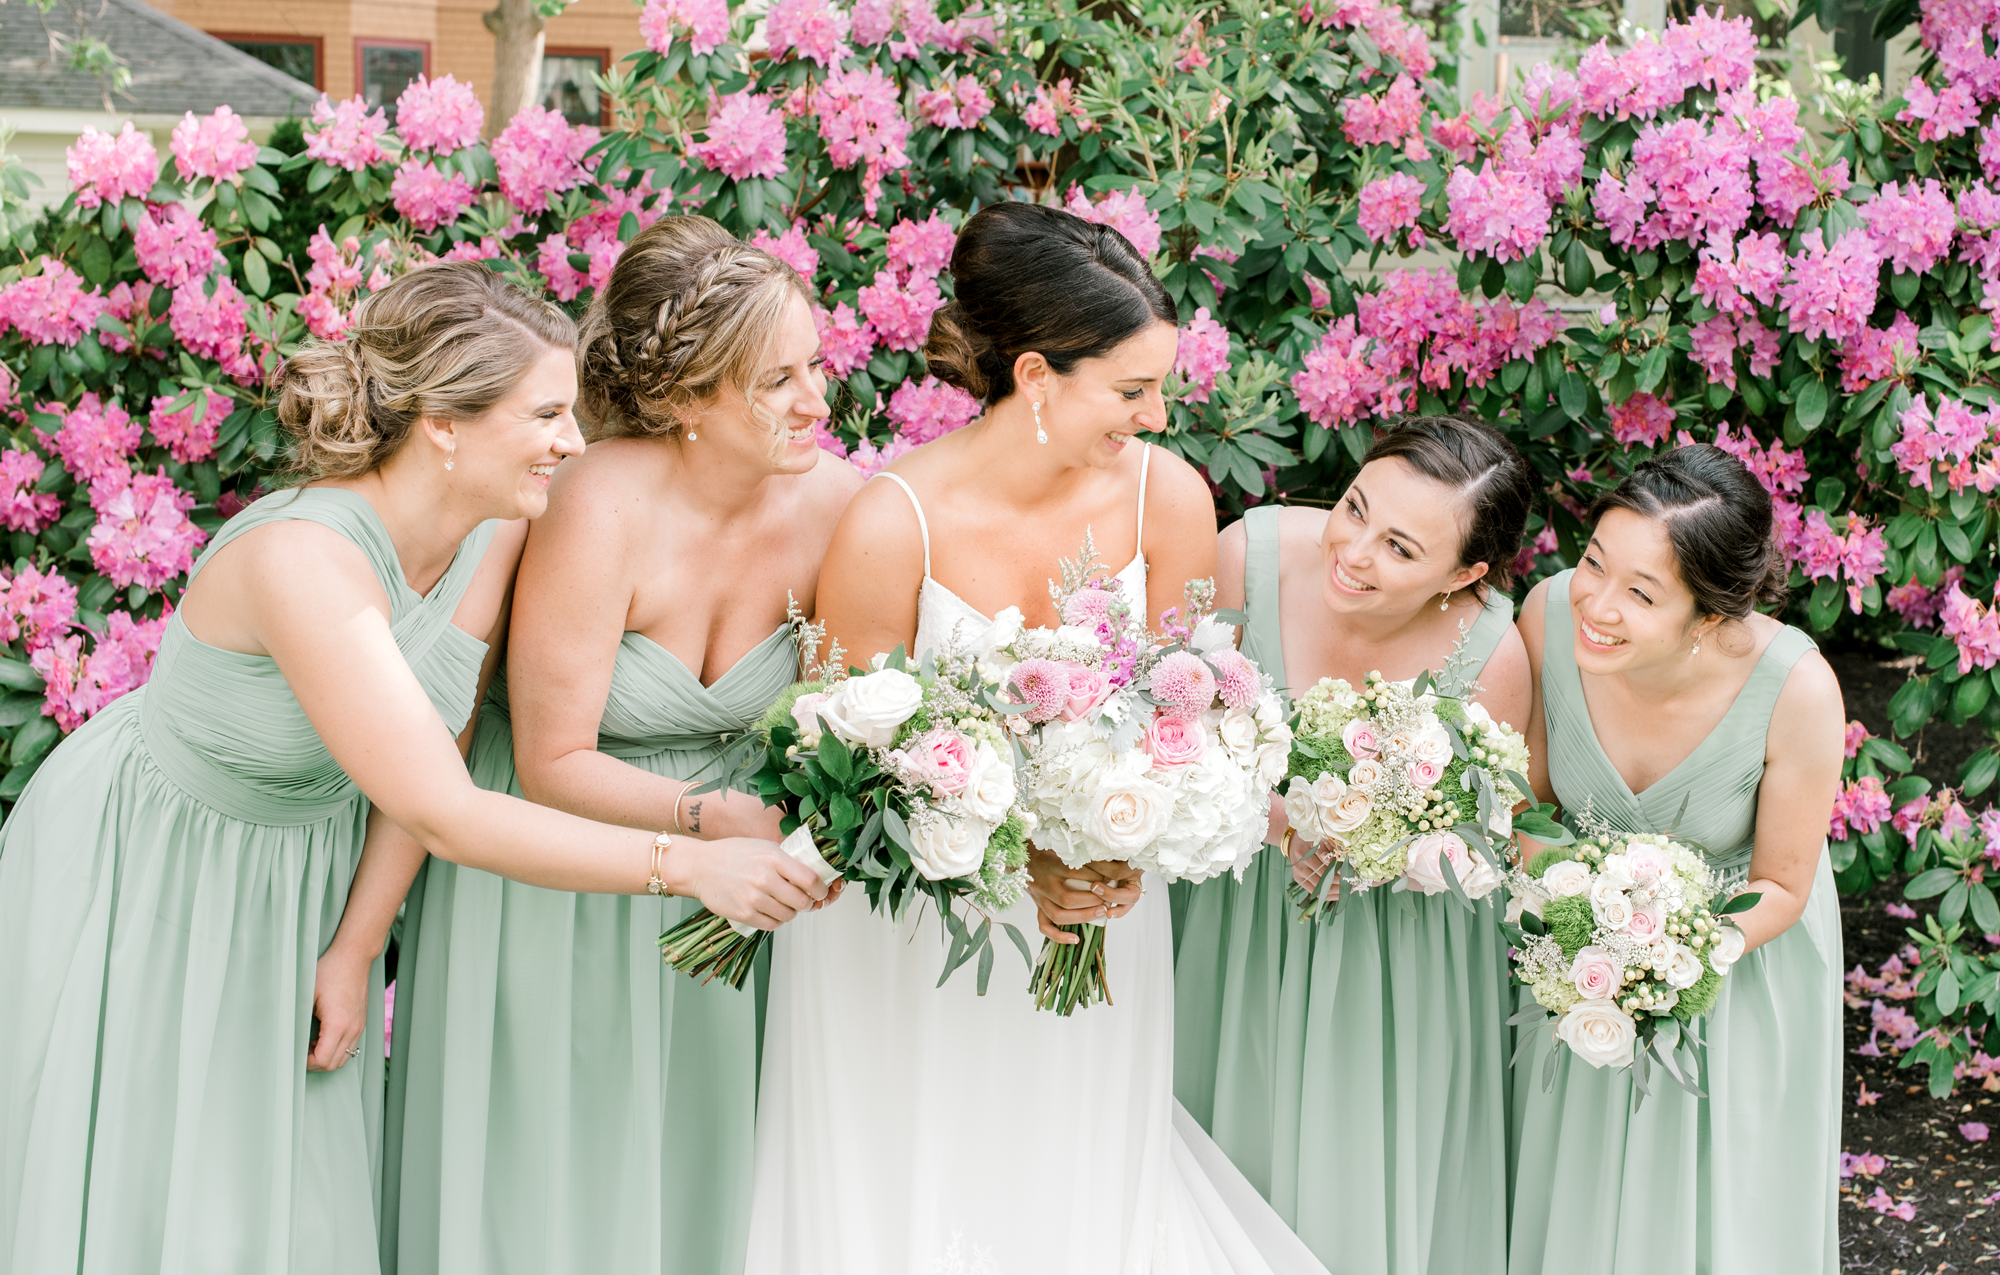 Newport-RI-wedding-photographer-bridal-party-1.png